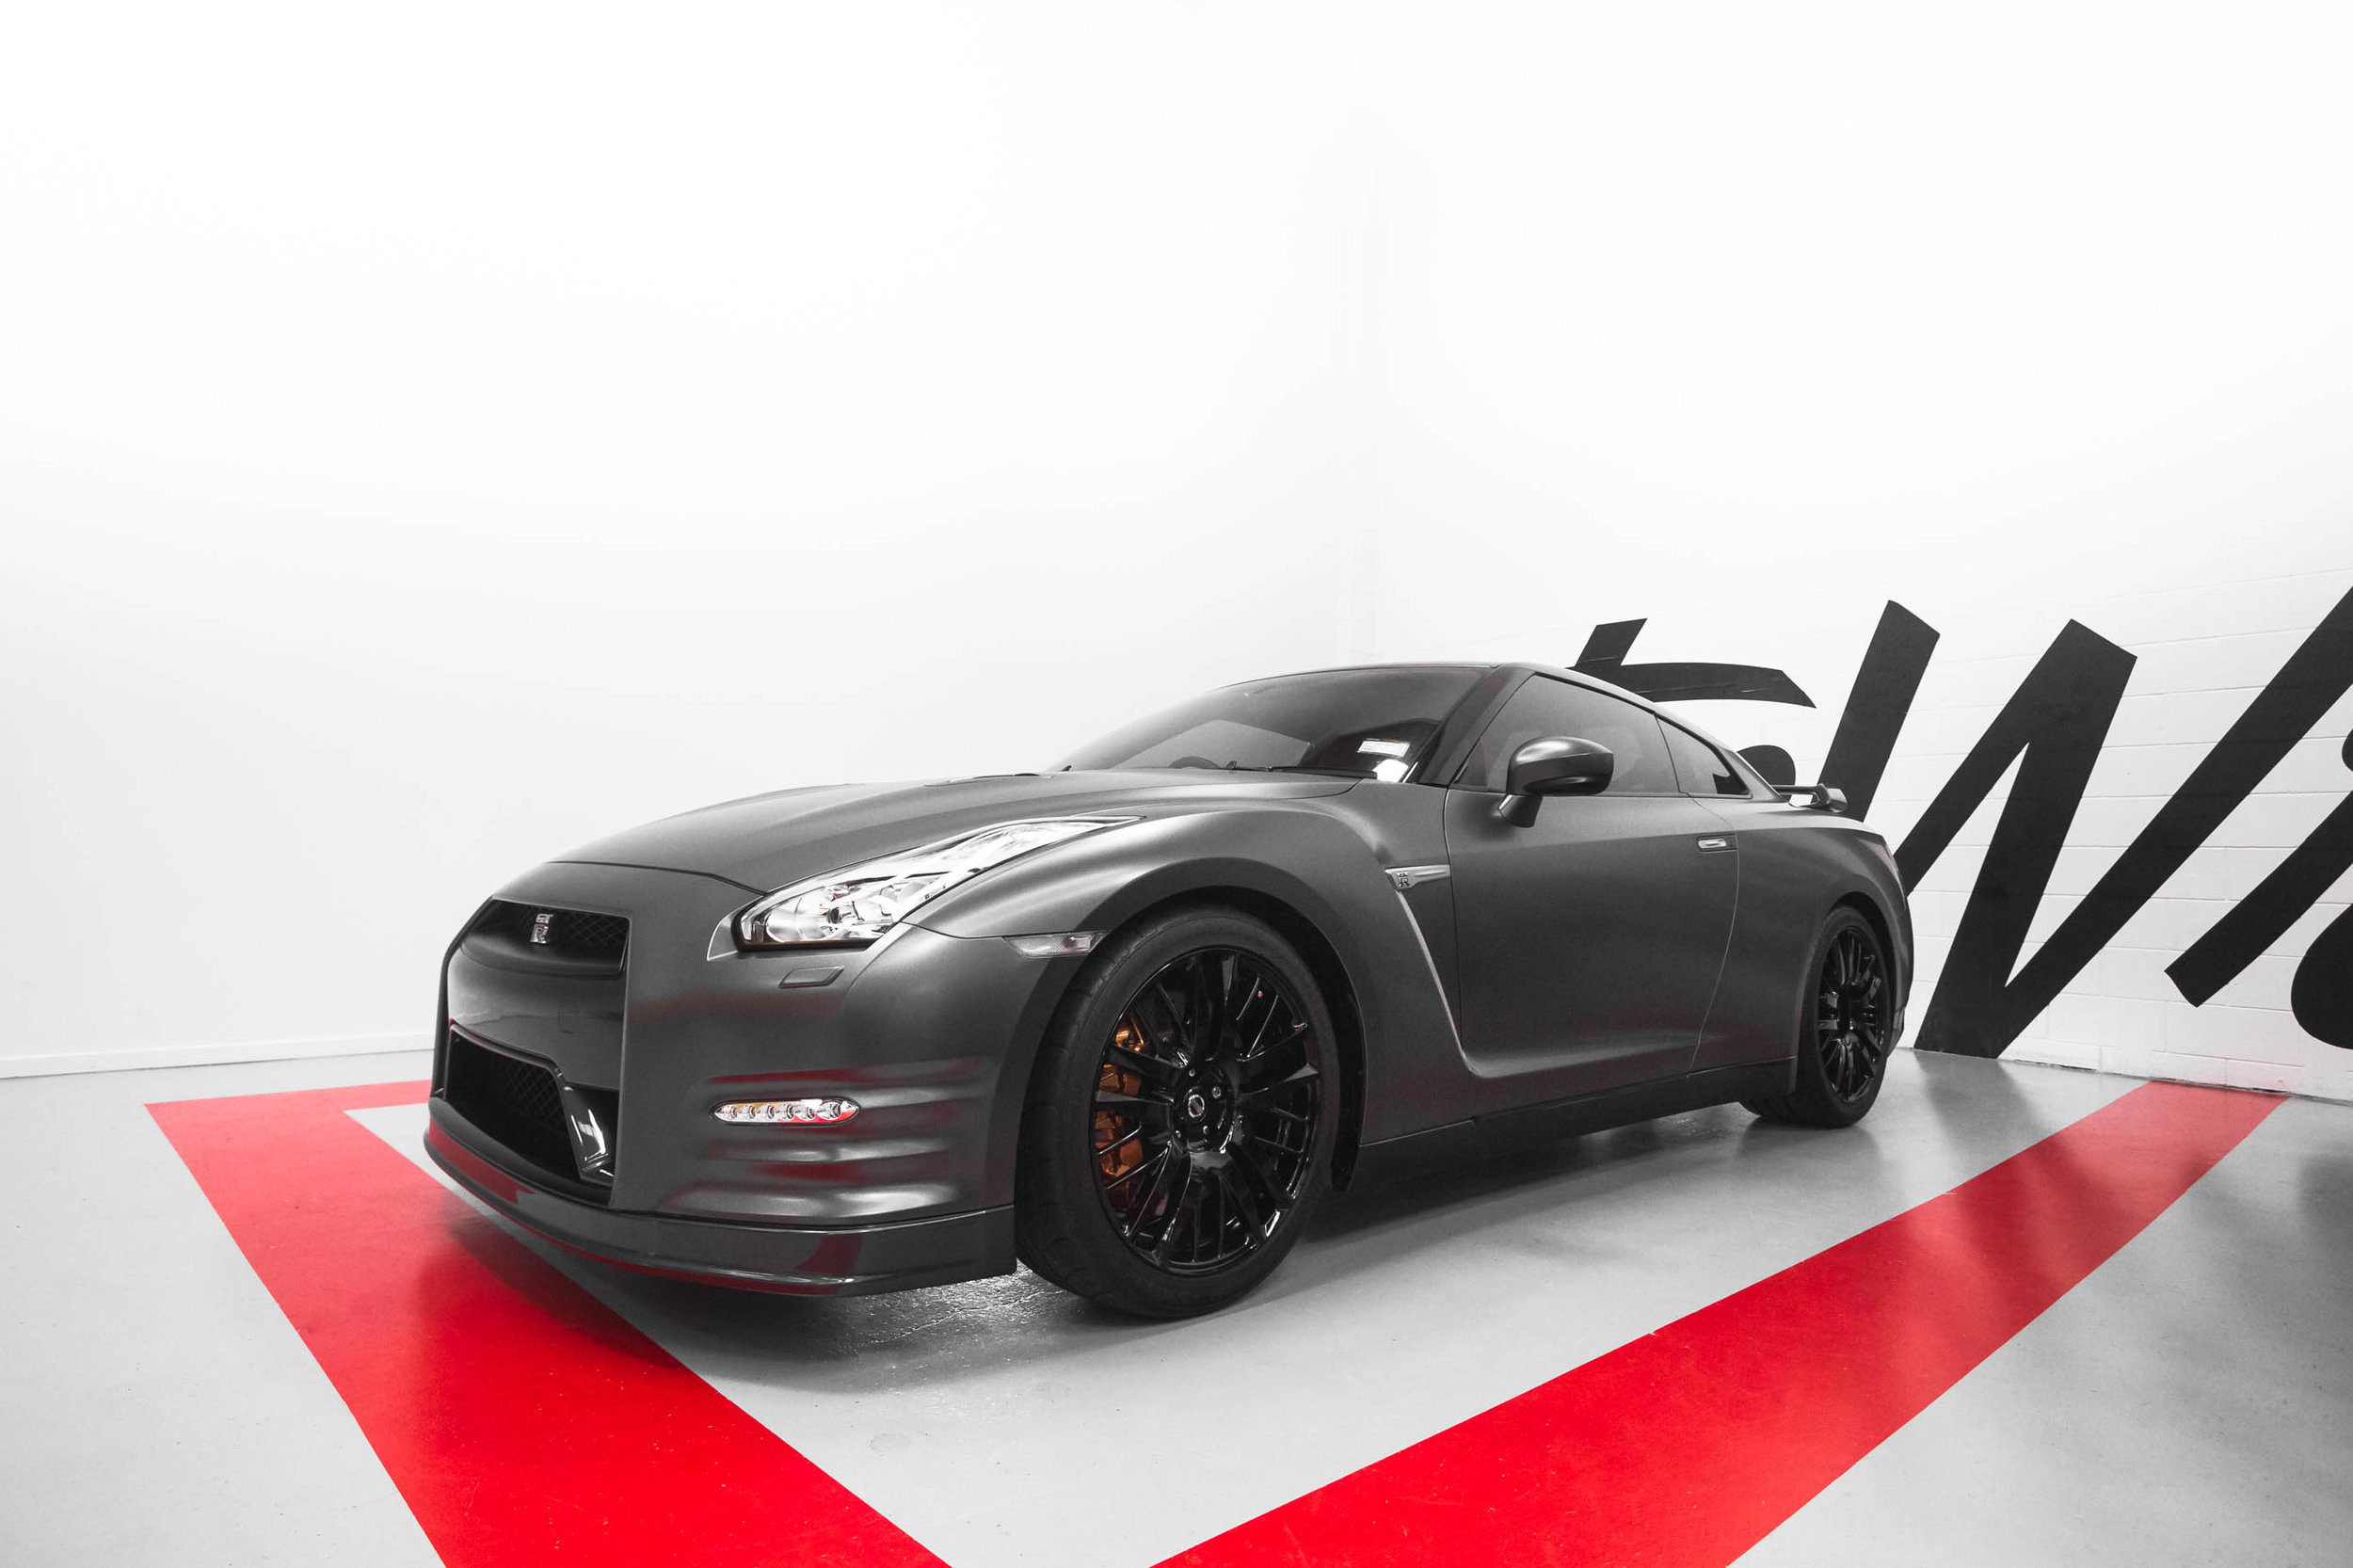 Wrapped Nissan skyline GTR r35